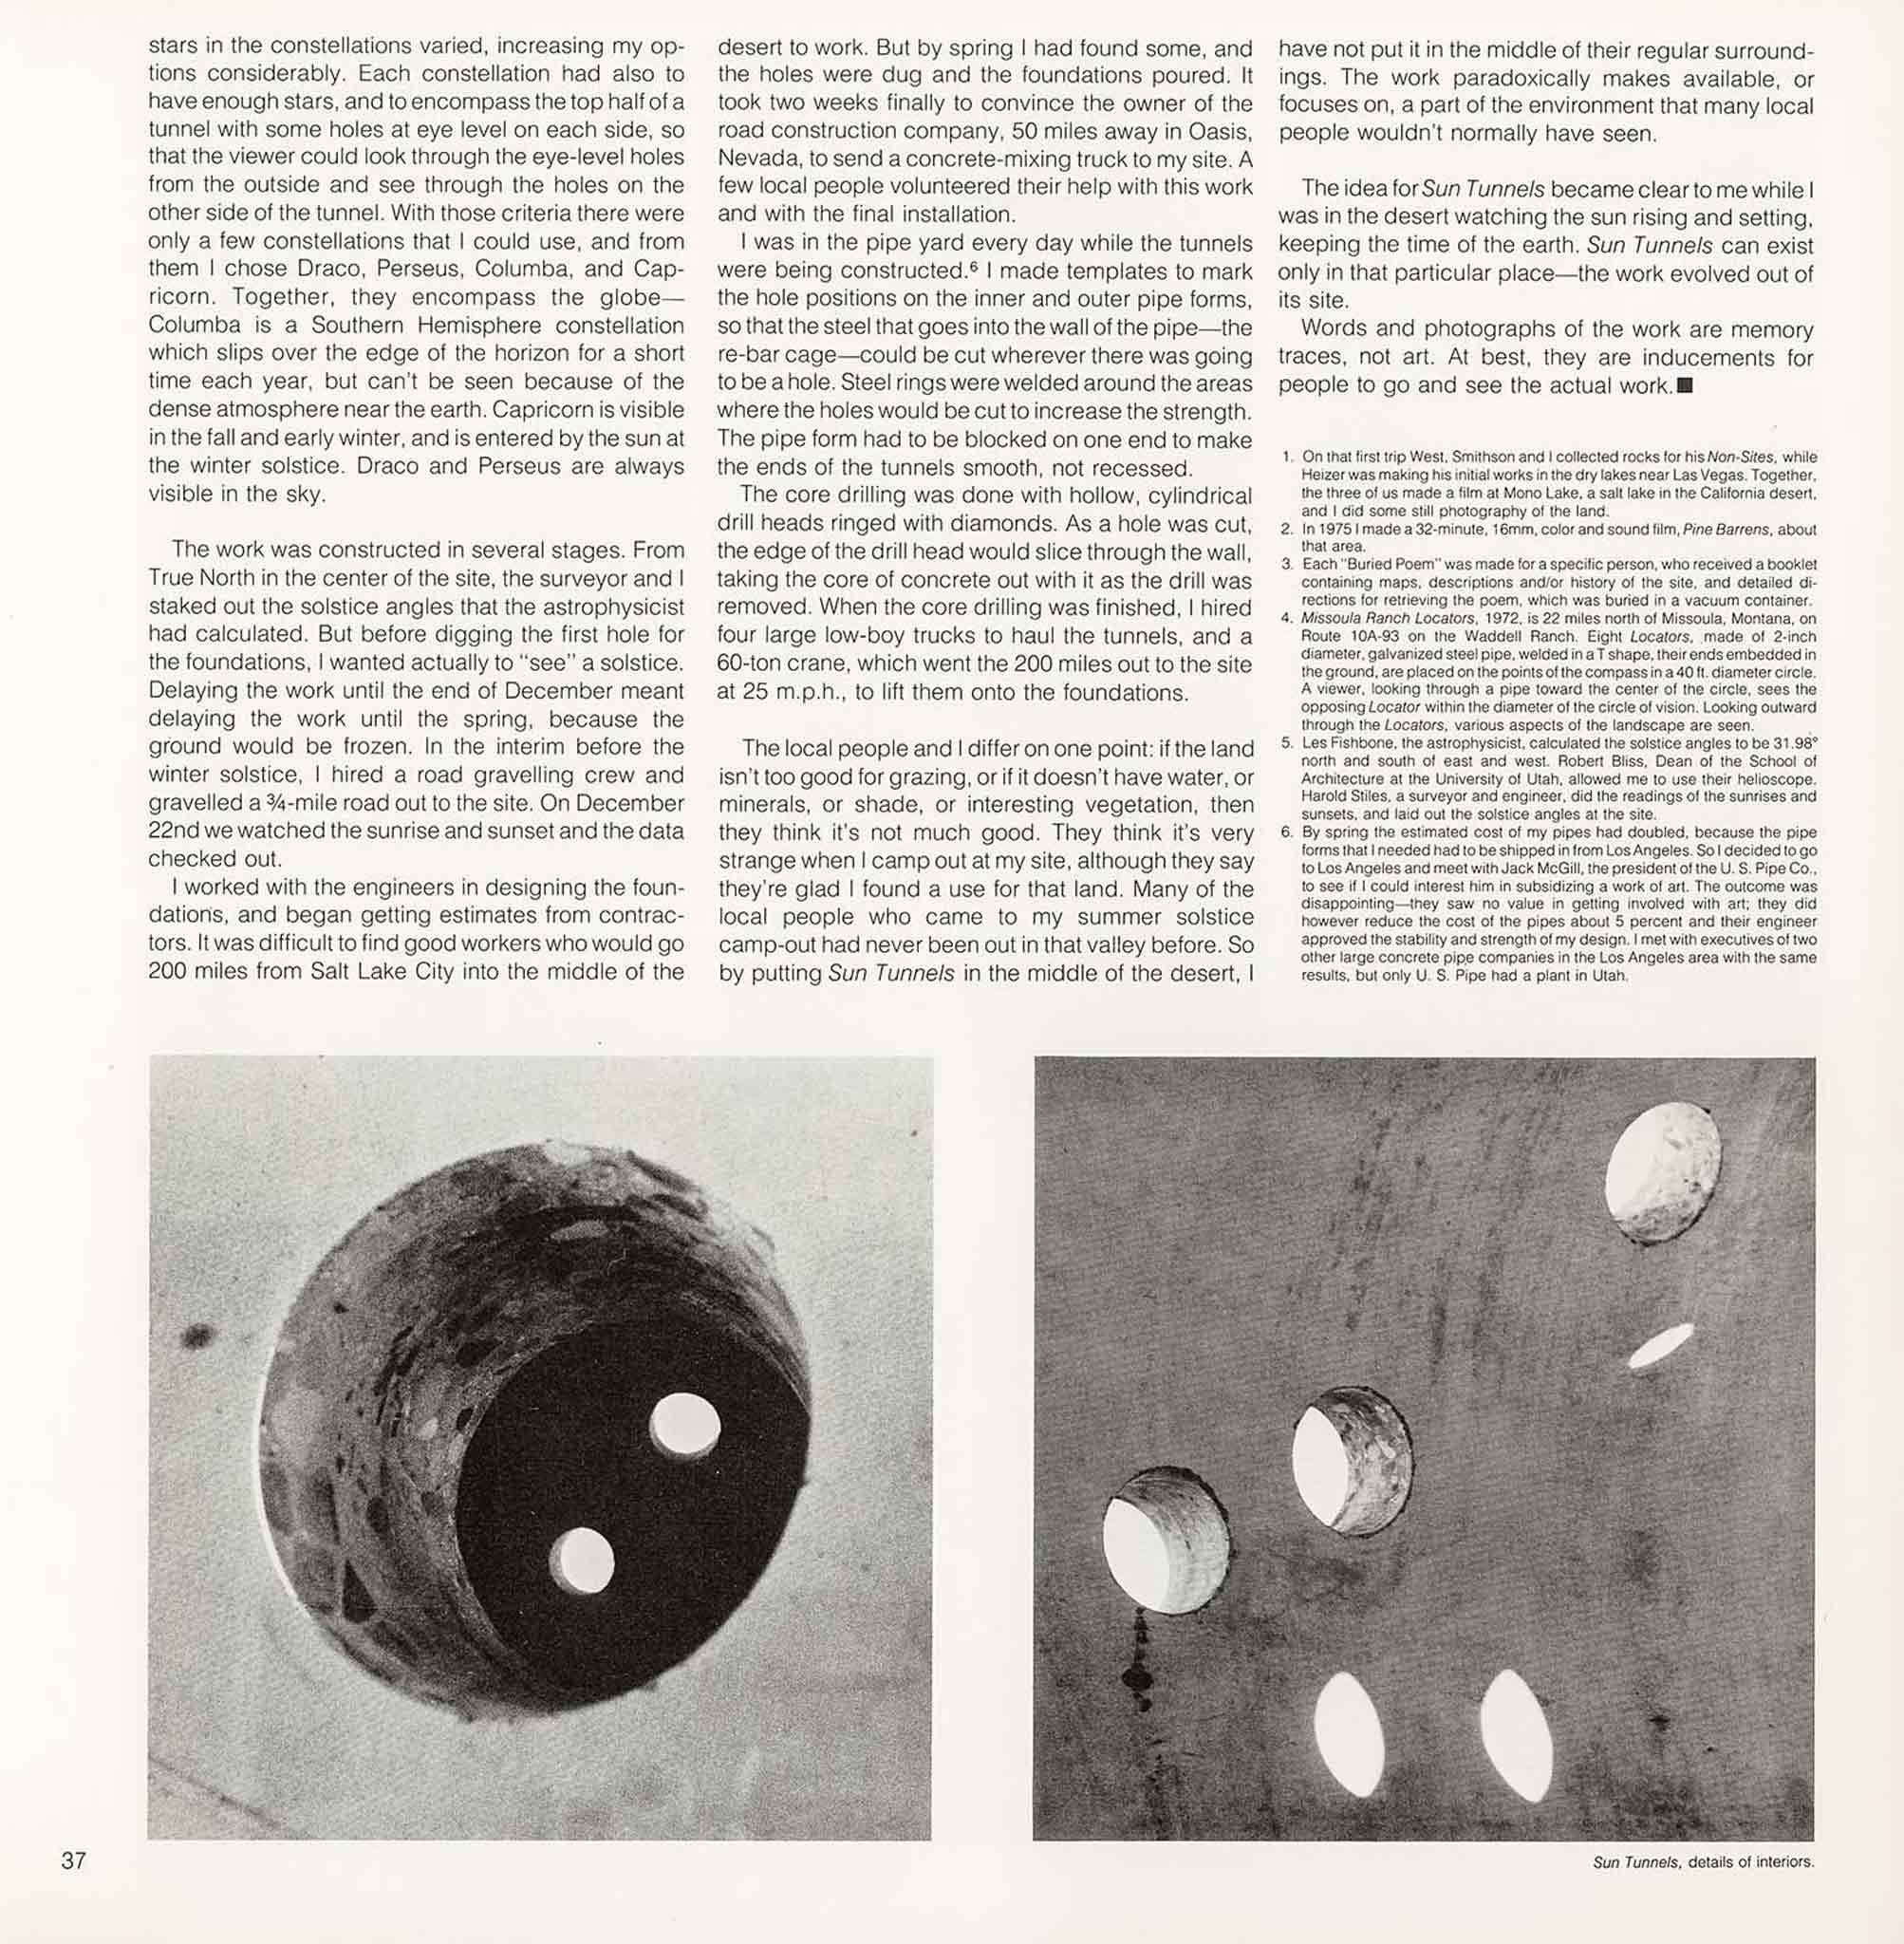 Magazine layout with text at the top and two images side by side at the bottom.  Images are details of circular holes bored through concrete.